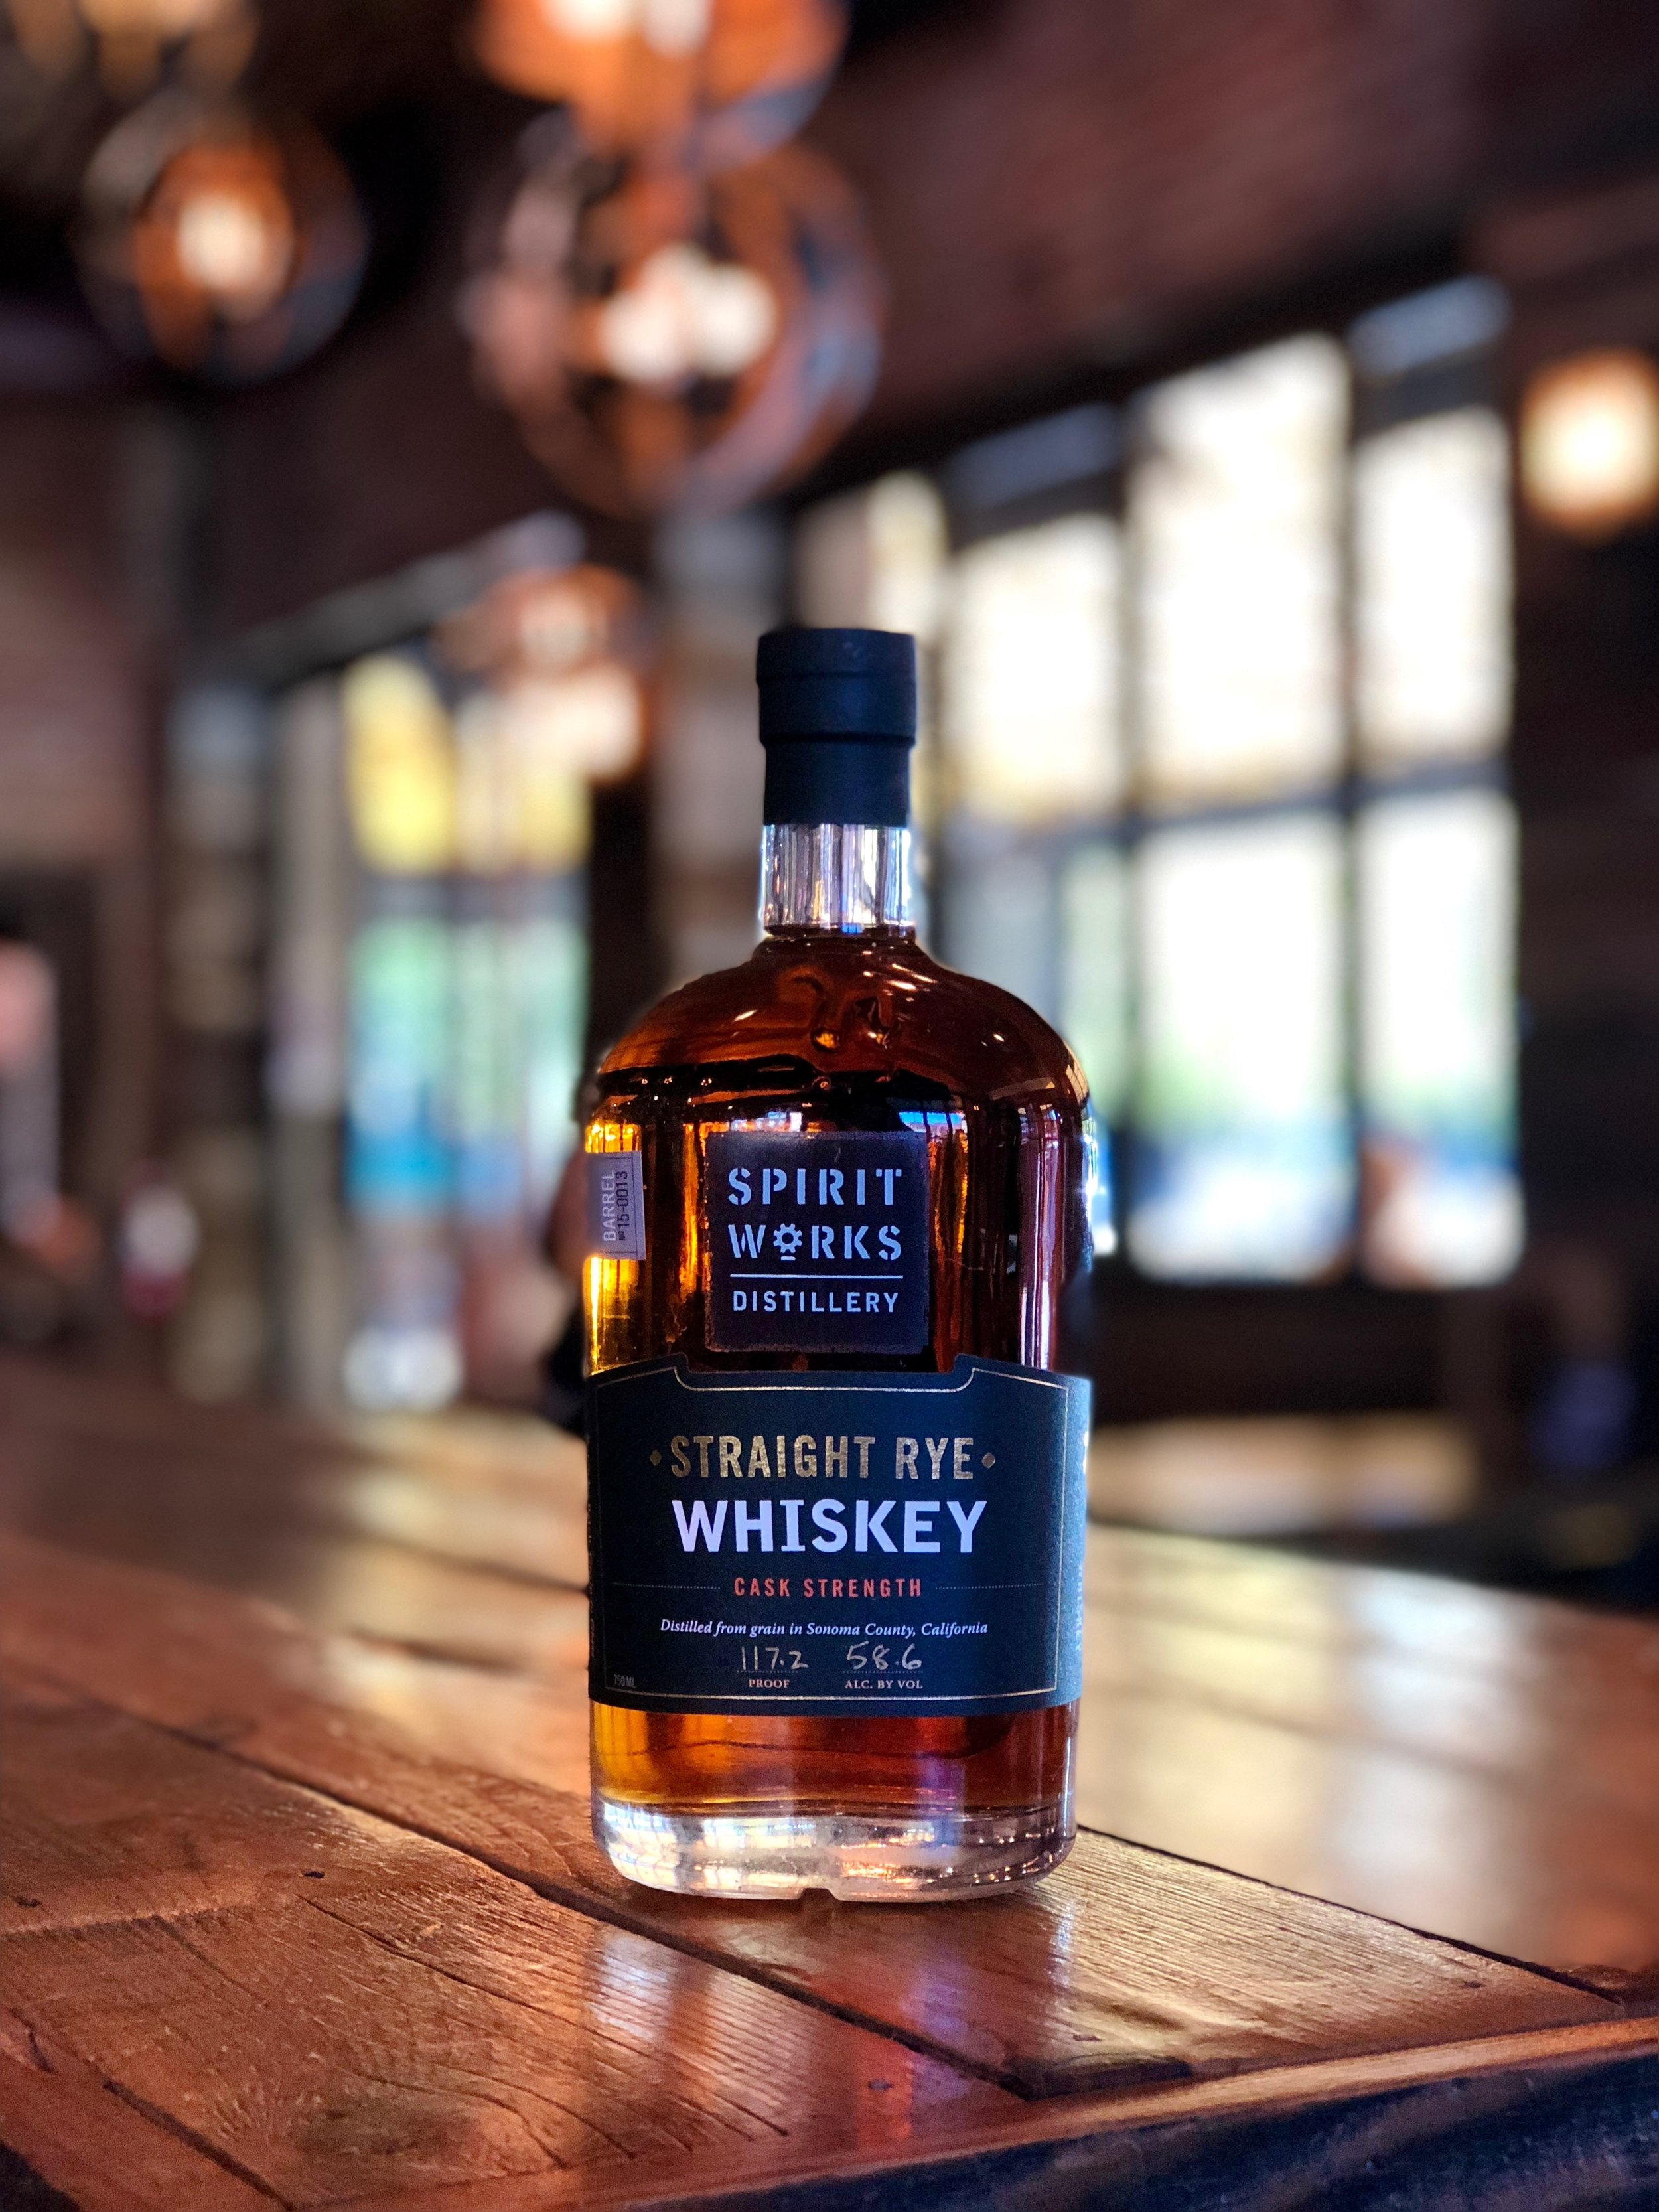 Happy Halloween! 🎃 👻 🍂 🍁For this festive fall holiday, we have a spicy, local whiskey for Hallowhiskey Wednesday!   .  Spirit Works Distillery's Straight Rye Whiskey will leave baked apple, leather, cedar, and coffee on the nose and tastes of clove, baking spices, honeycomb, and oak on the palate. Straight from Sebastopol, Timo and Ashby and their small staff of dedicated, passionate, and predominantly female producers have really created something worth your while. You need to come taste this exclusive whiskey!  .  Whiskey Wednesday offers 50% off all whiskeys $10/oz and under!  .  Have fun today, and please be safe and drink responsibly!